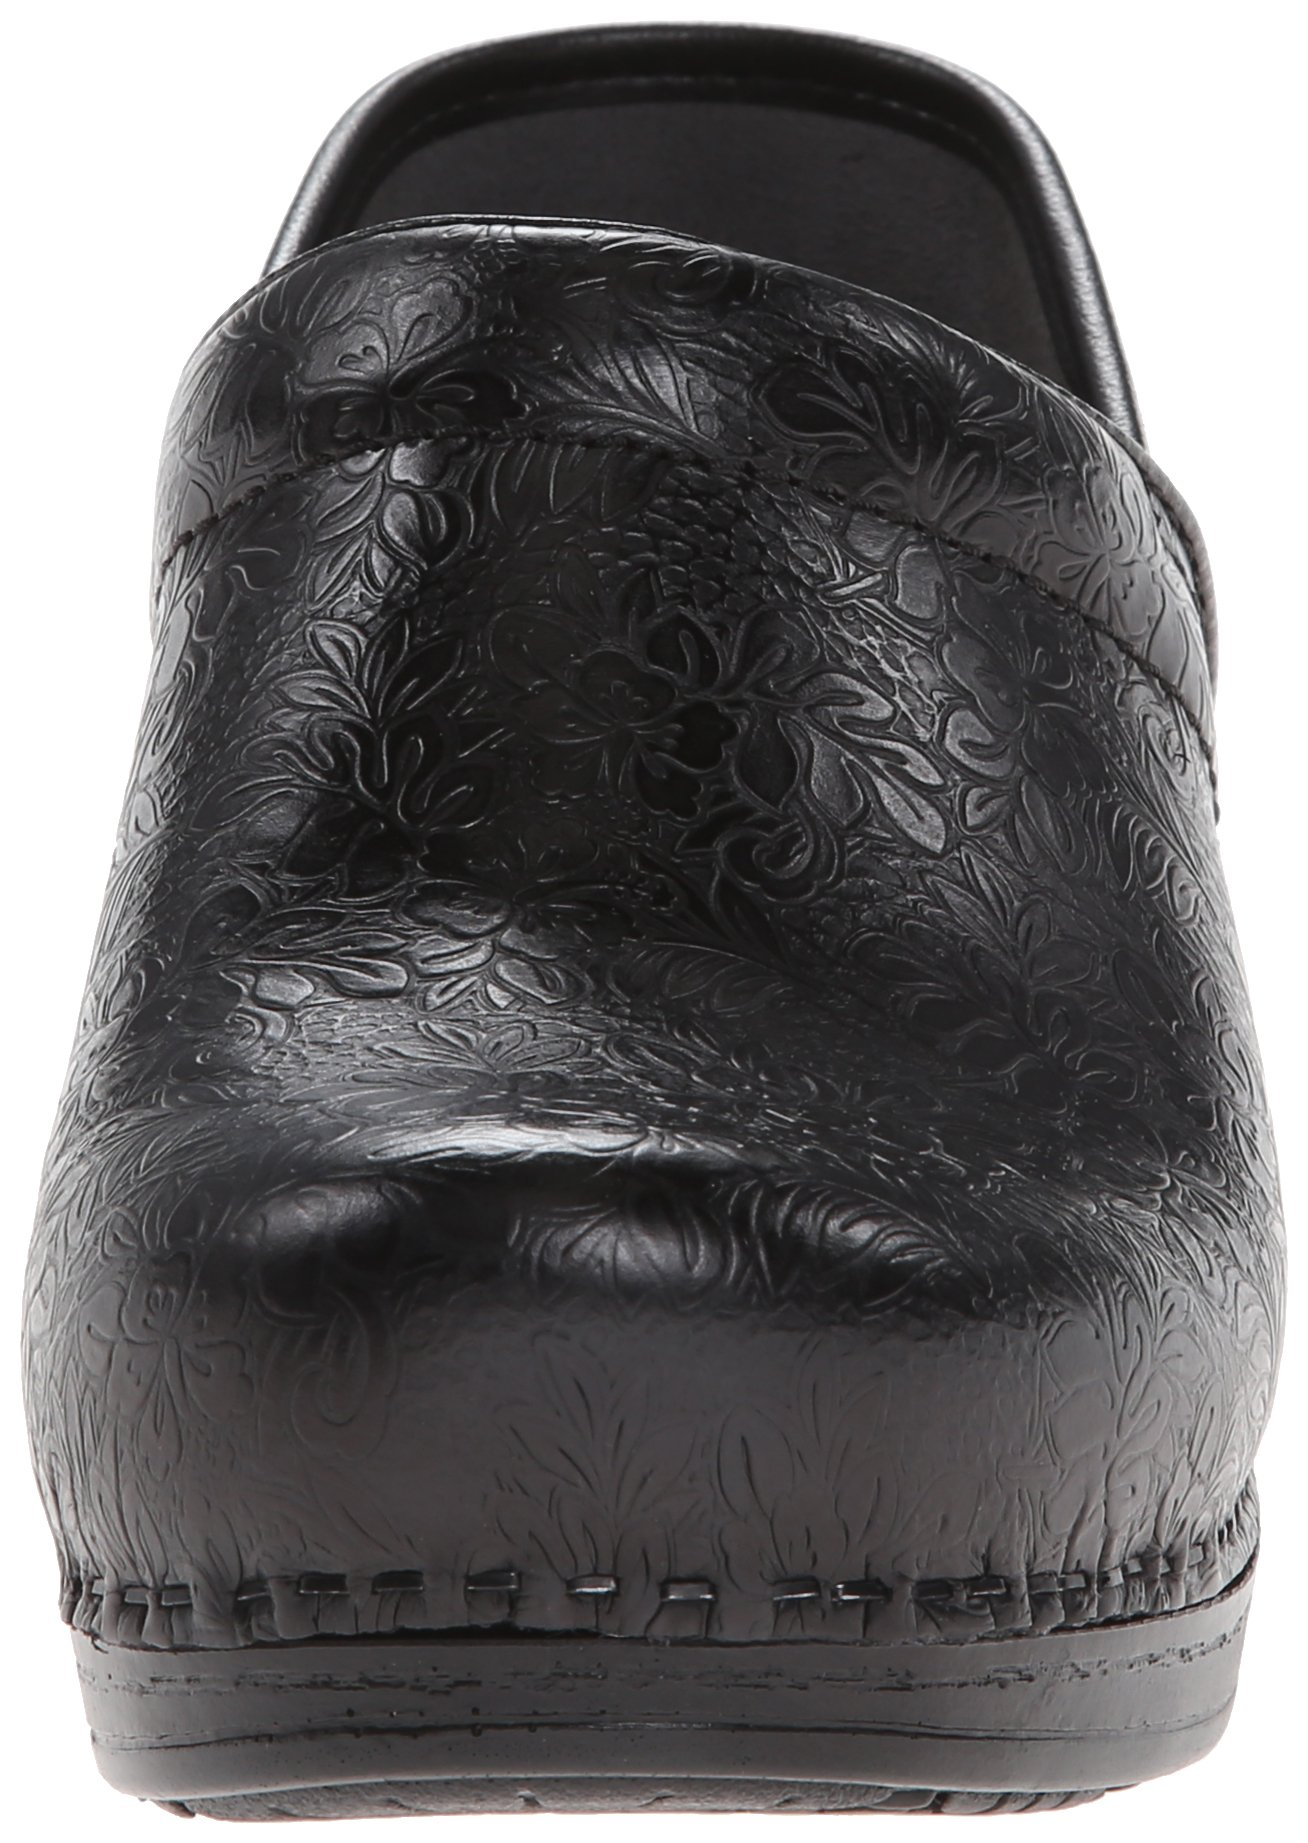 Dansko Women's Pro XP Mule,Black Floral Tooled,39 EU/8.5-9 M US by Dansko (Image #4)